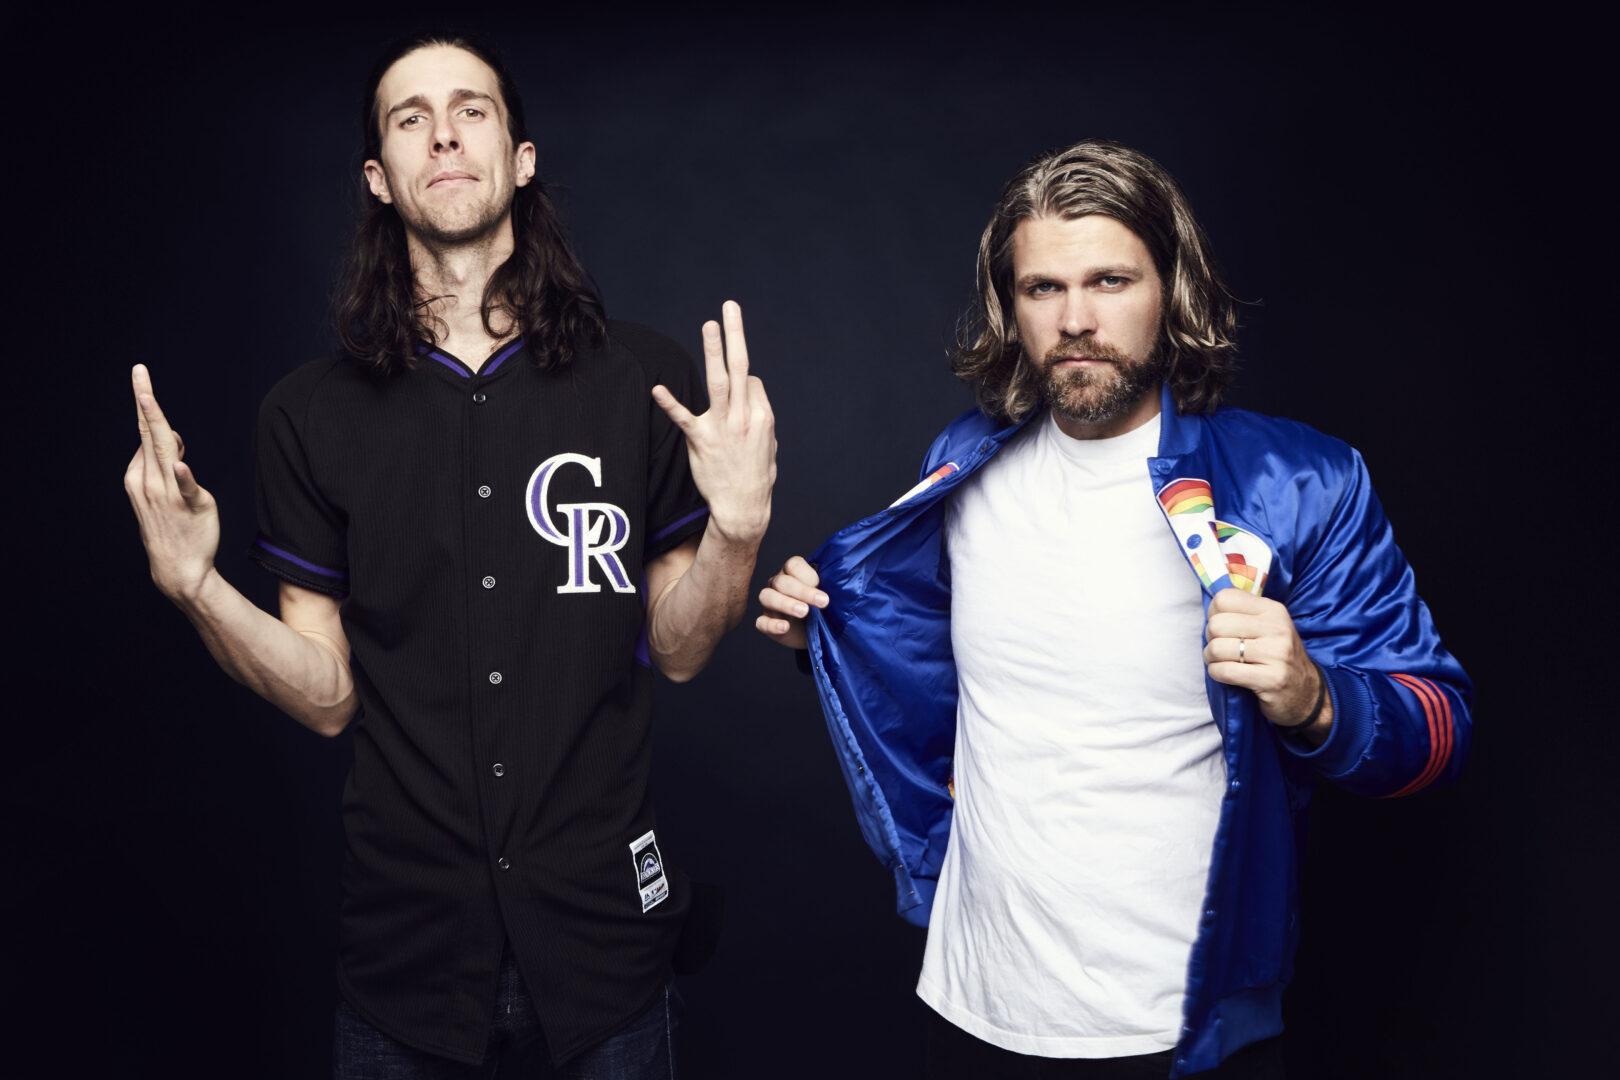 Get Excited For Vans Warped Tour 2016 With 3OH!3